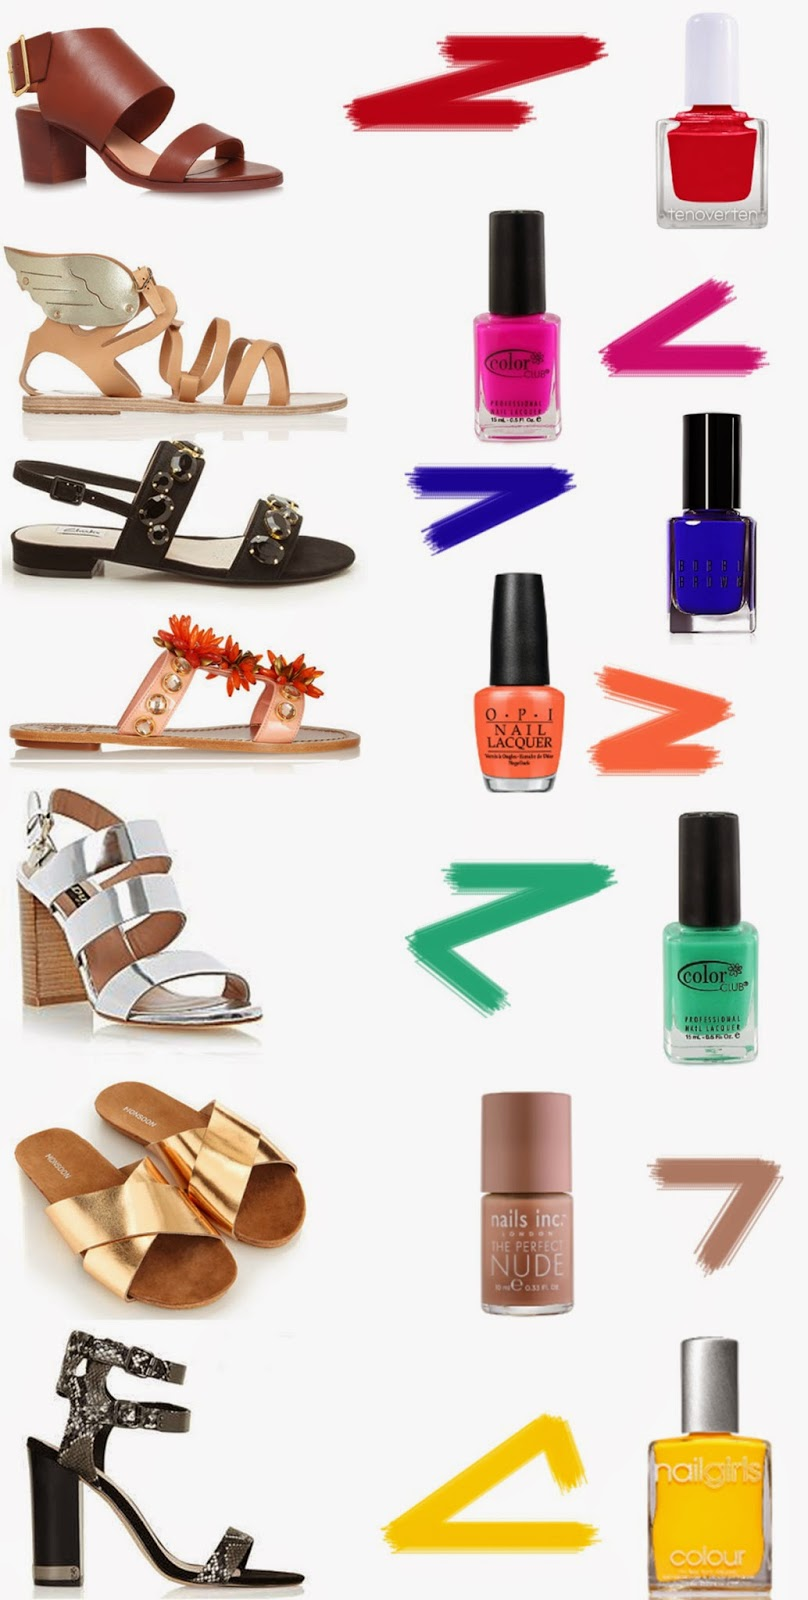 7 Hot Sandal & Polish Combinations